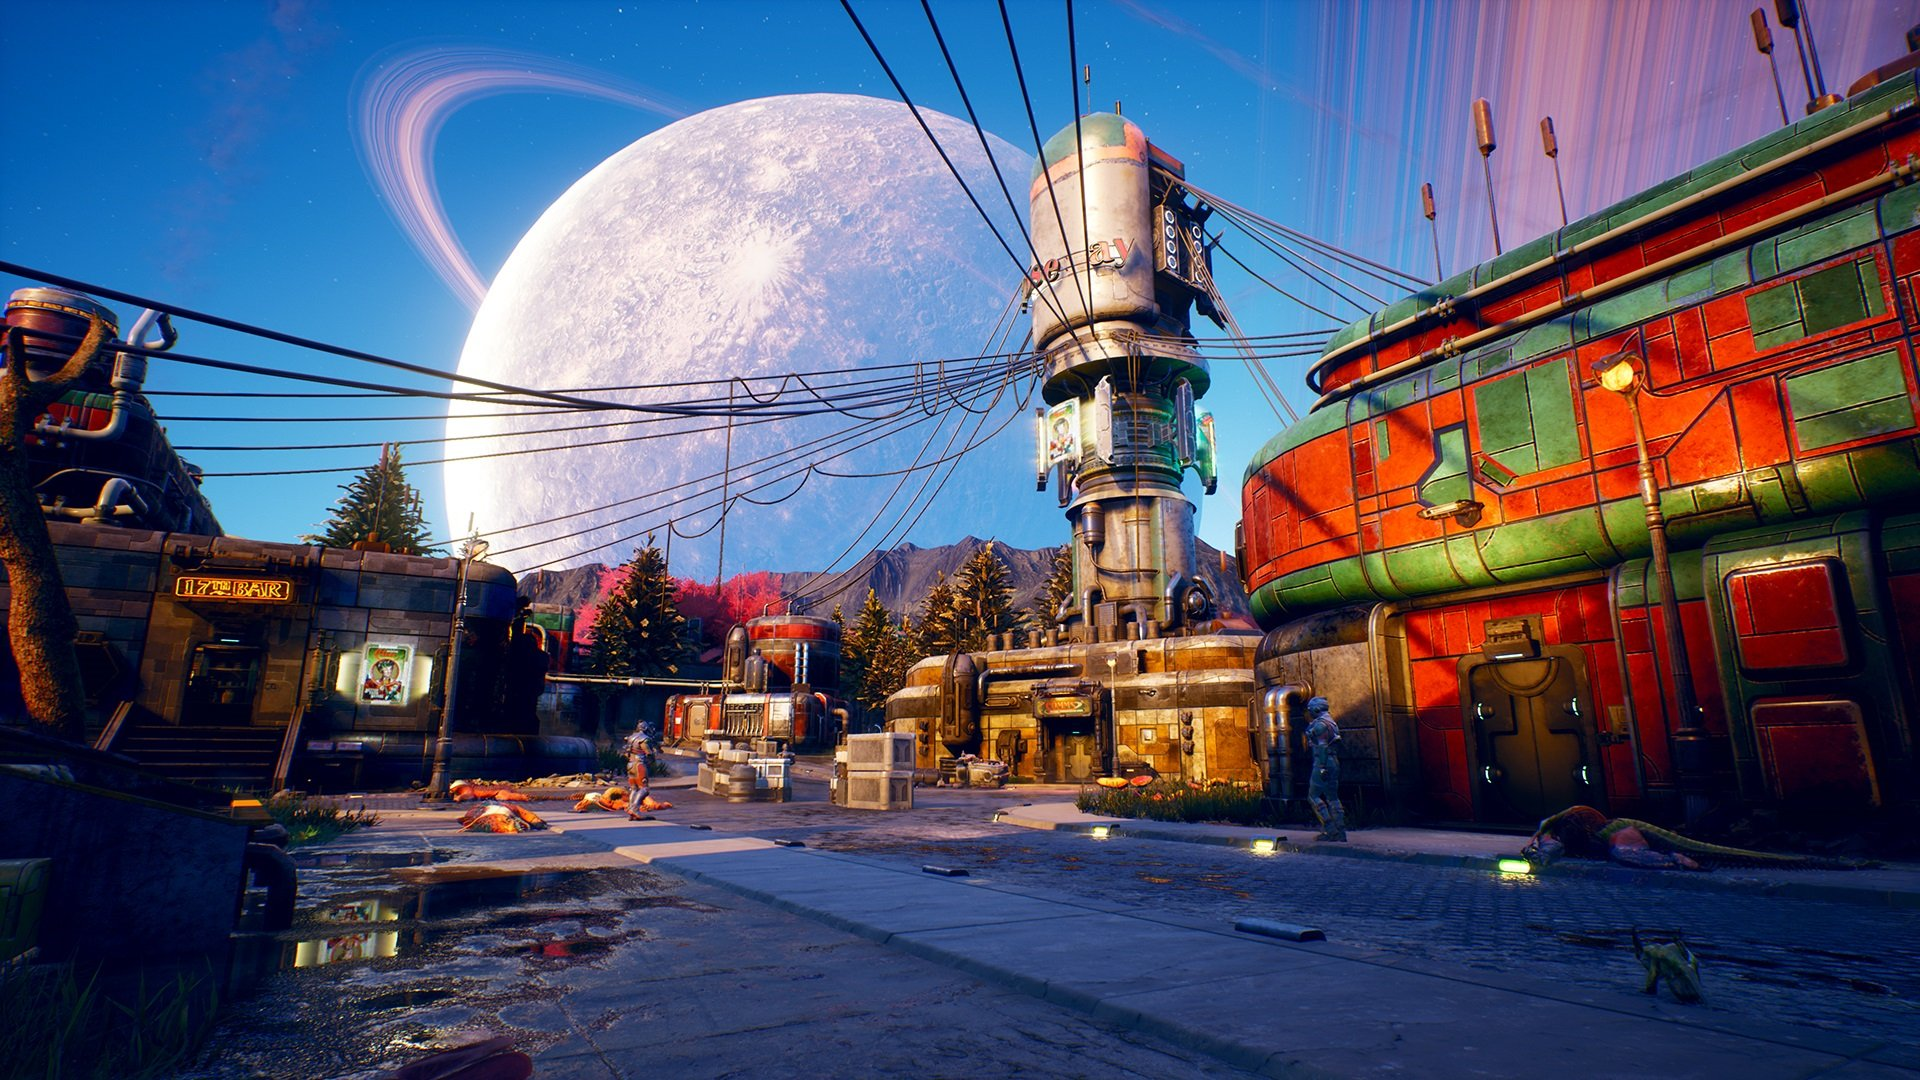 The Outer Worlds is one of the best RPGs of 2019 and full of memorable characters like Parvati.